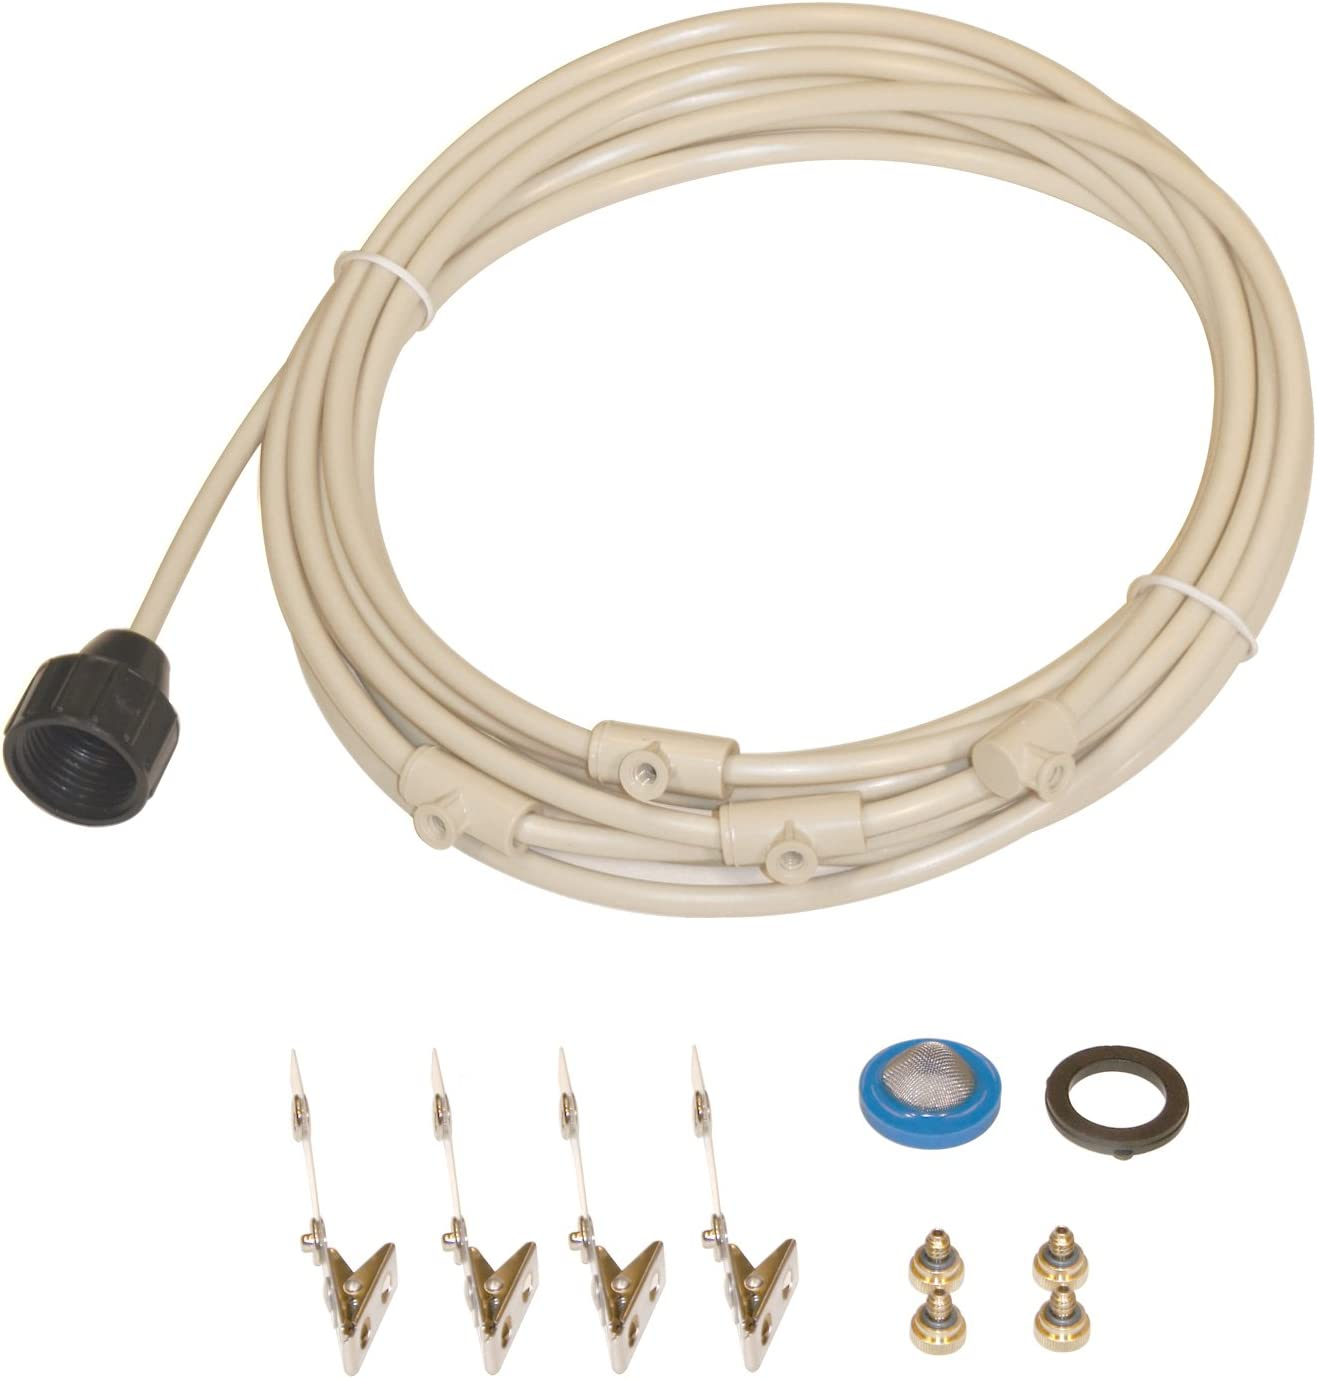 "SPT SM-1404: 1/4"" Misting Cooling Kit with 4 Nozzles (Made in USA)"